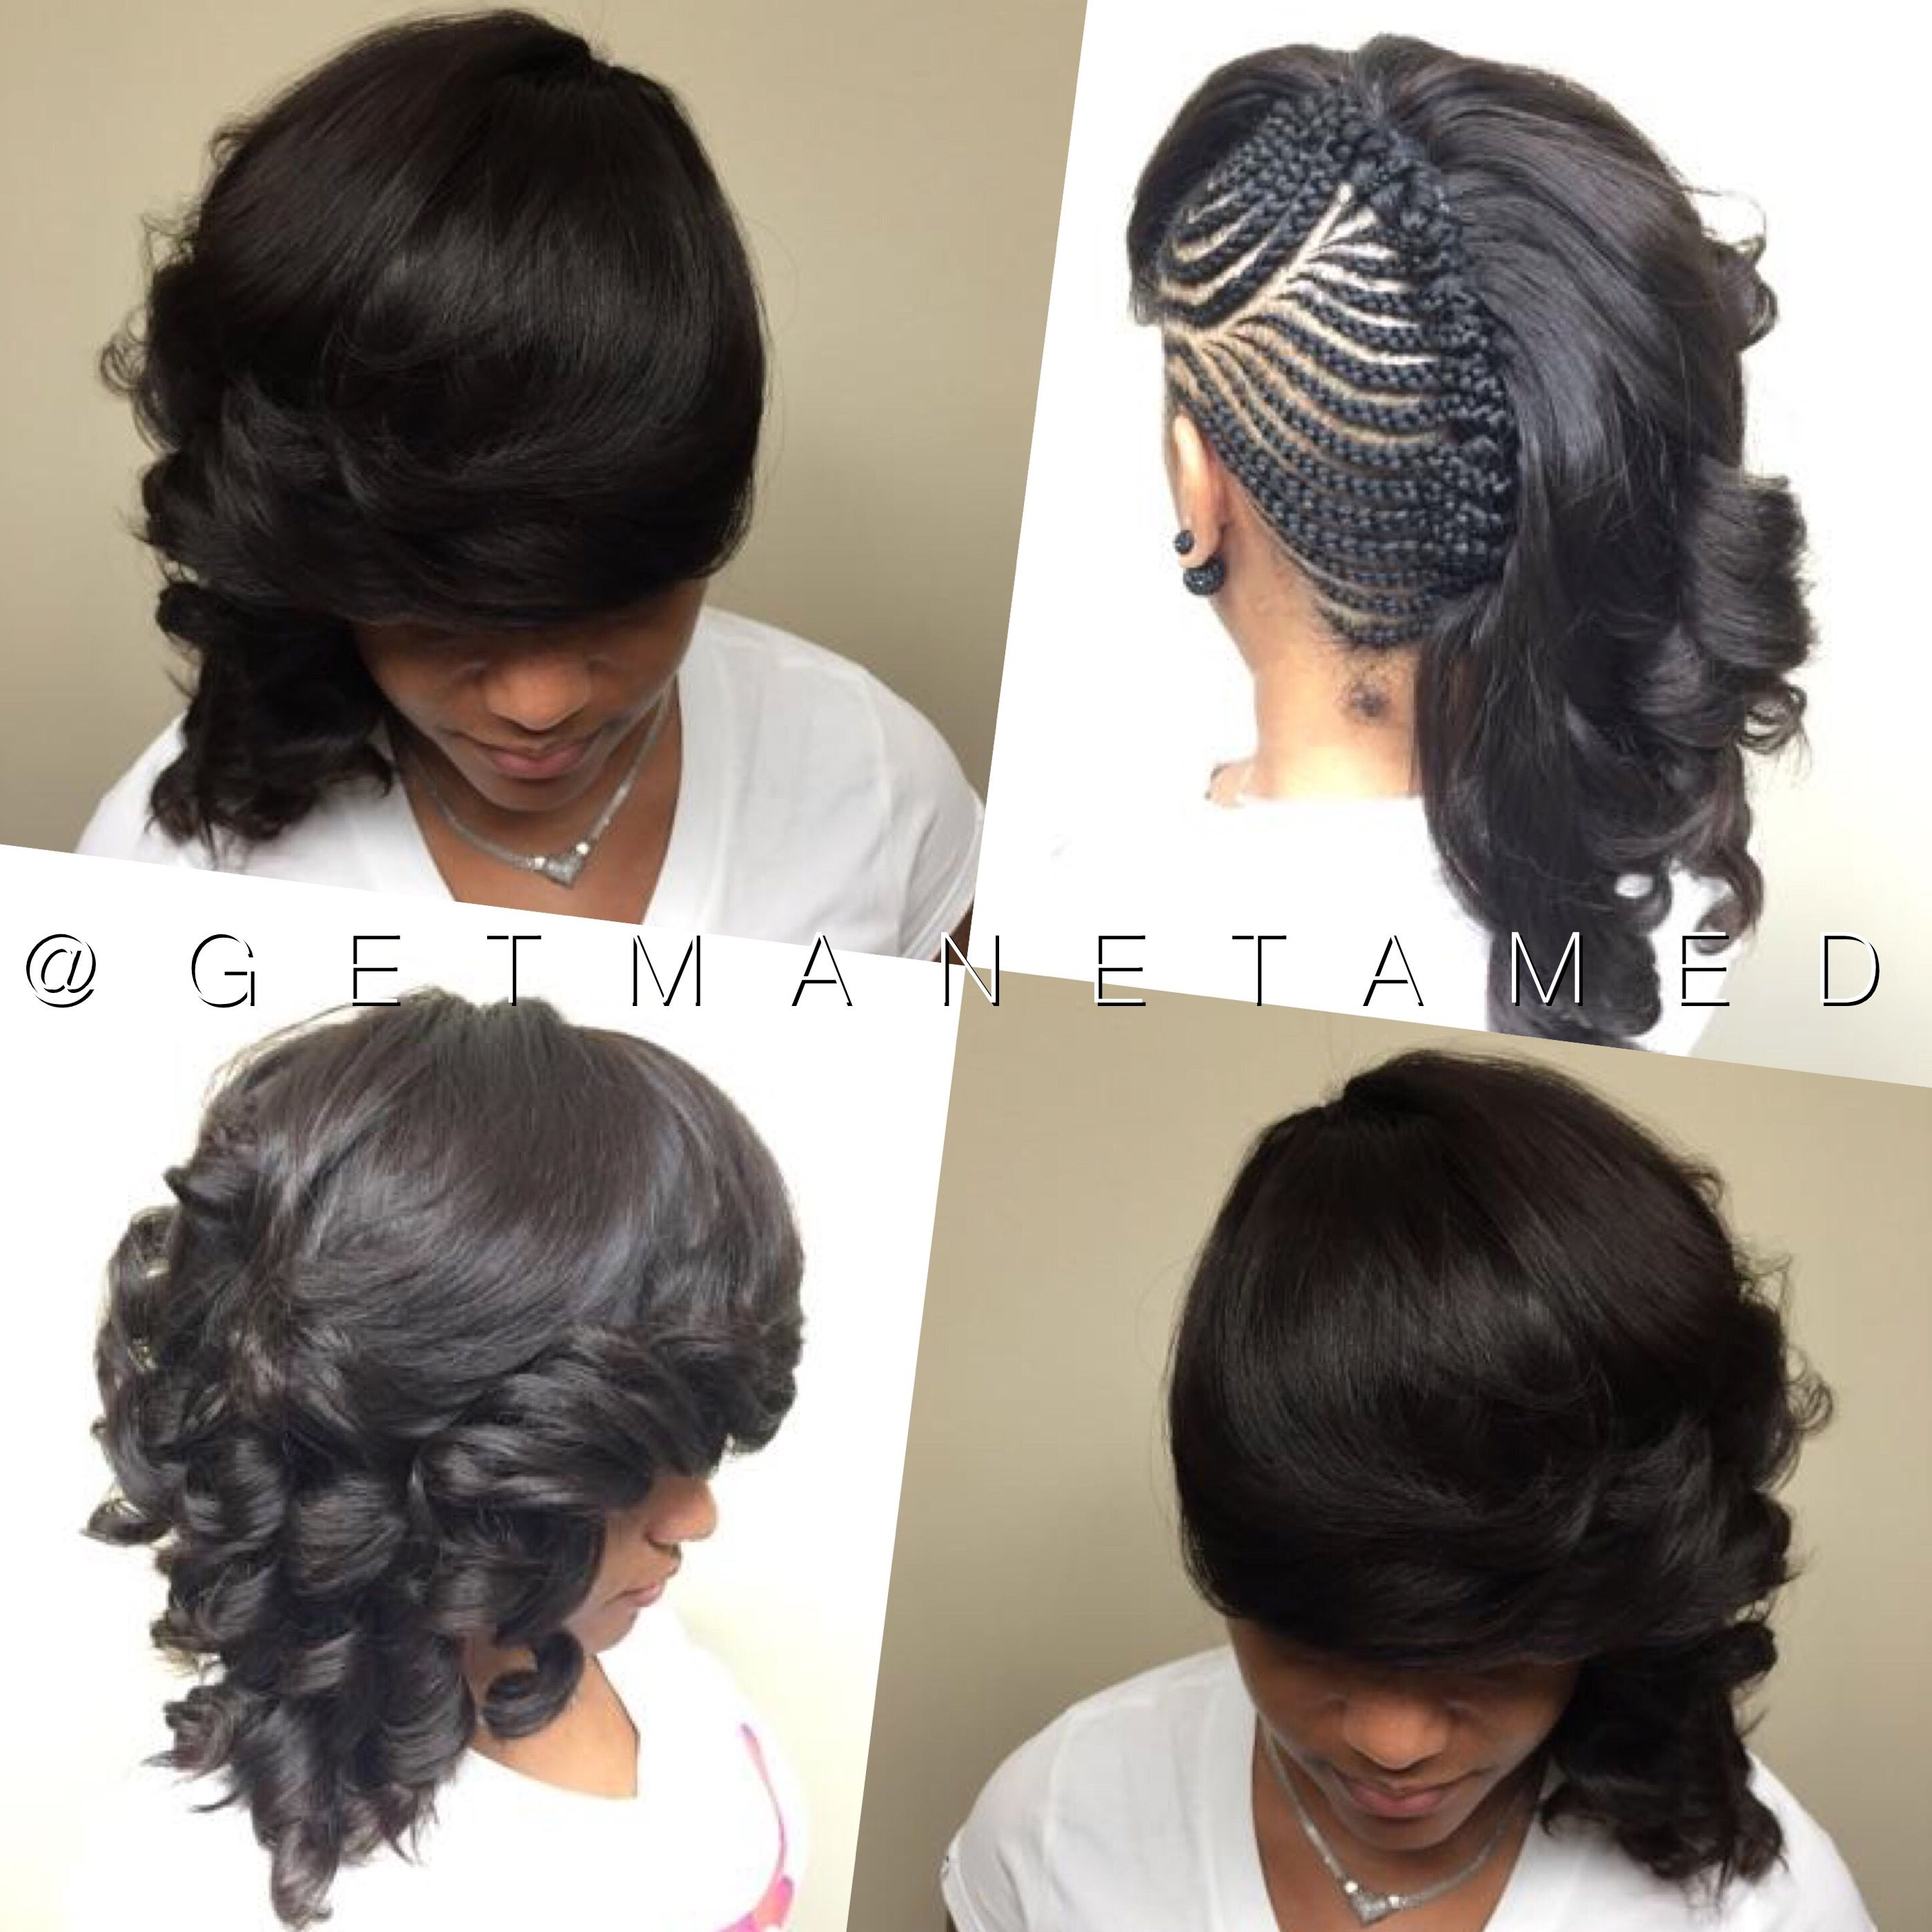 Sew in side sew in sew in and braids cornrows and sew in razor